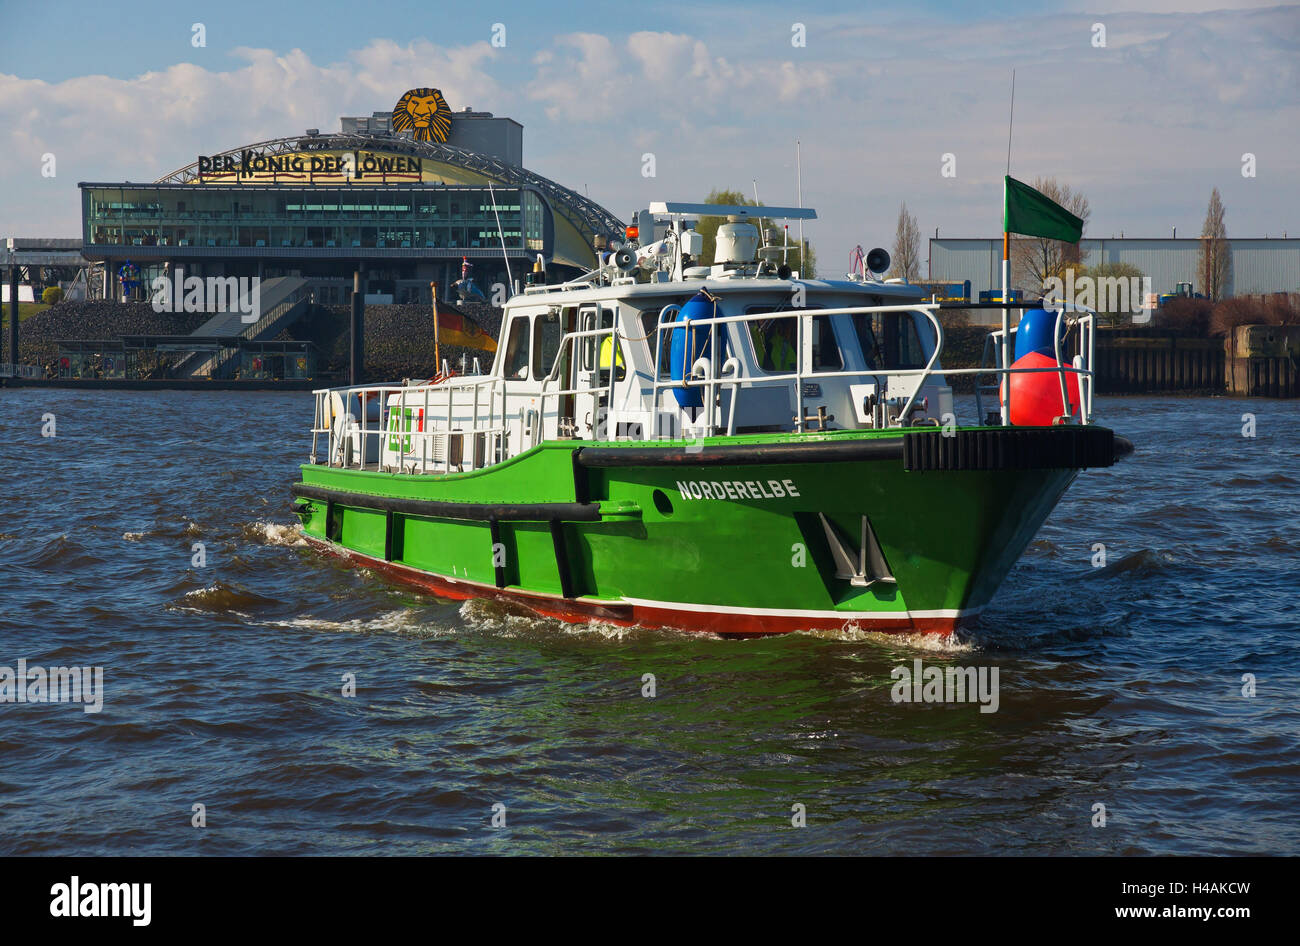 Customs boat 'Norderelbe' at Port of Hamburg, - Stock Image